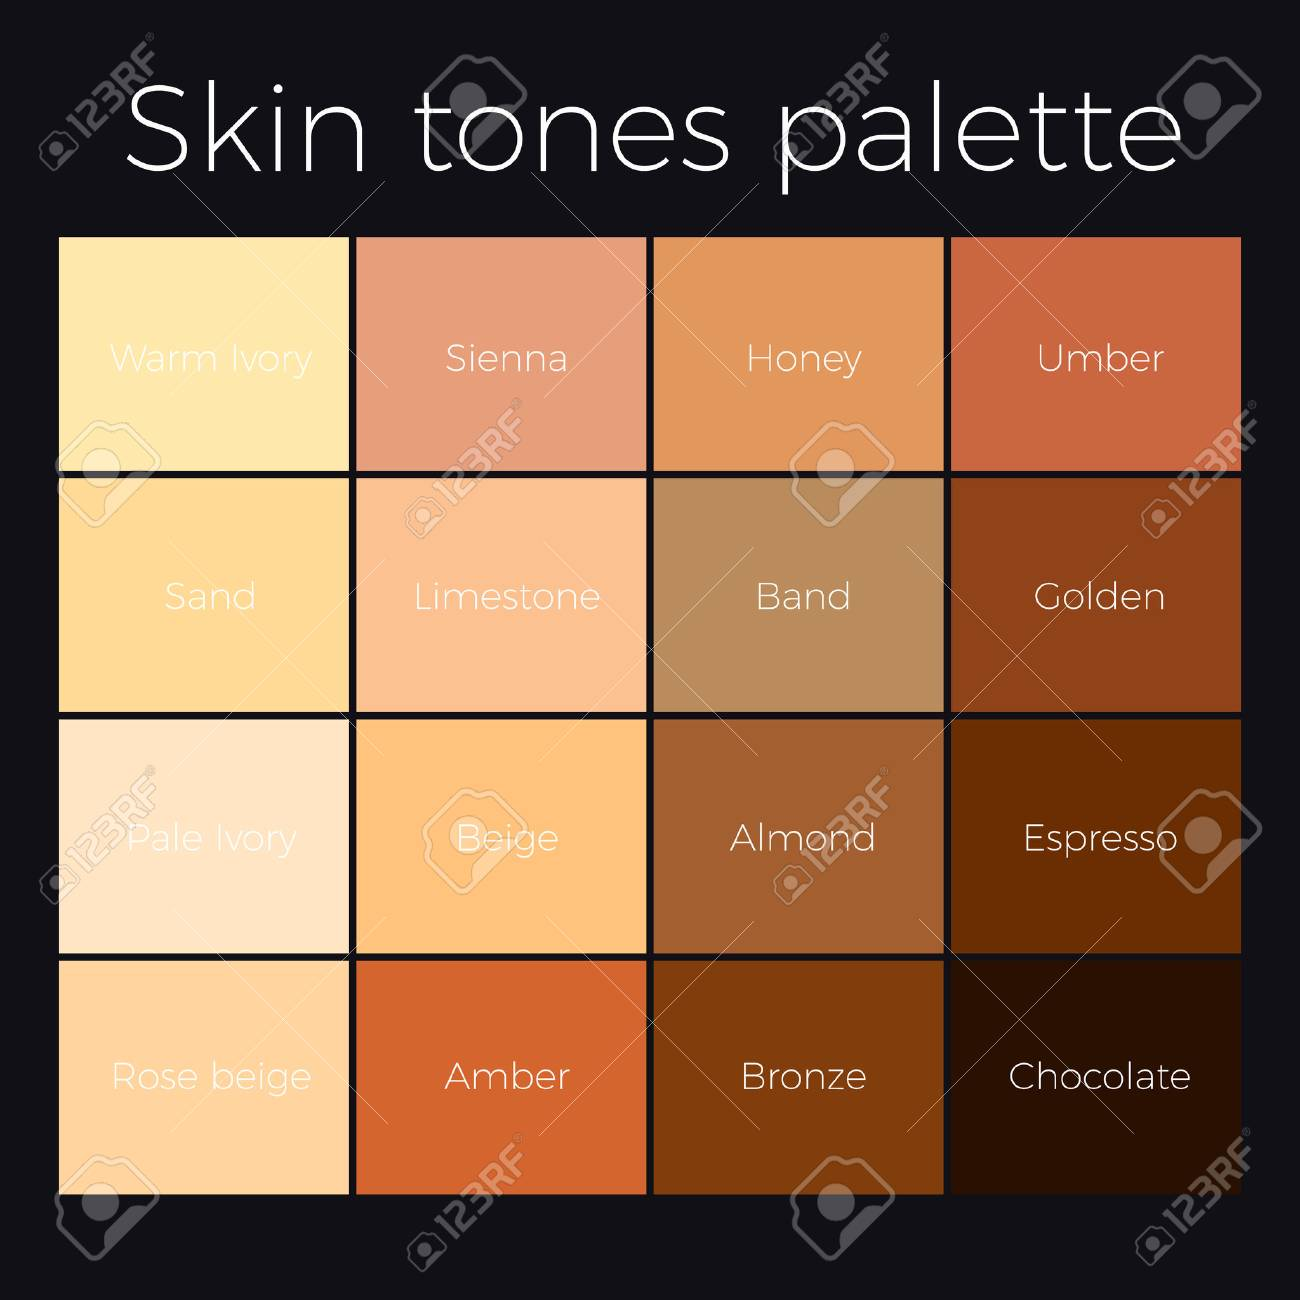 Skin tones palette vector skin color chart royalty free cliparts